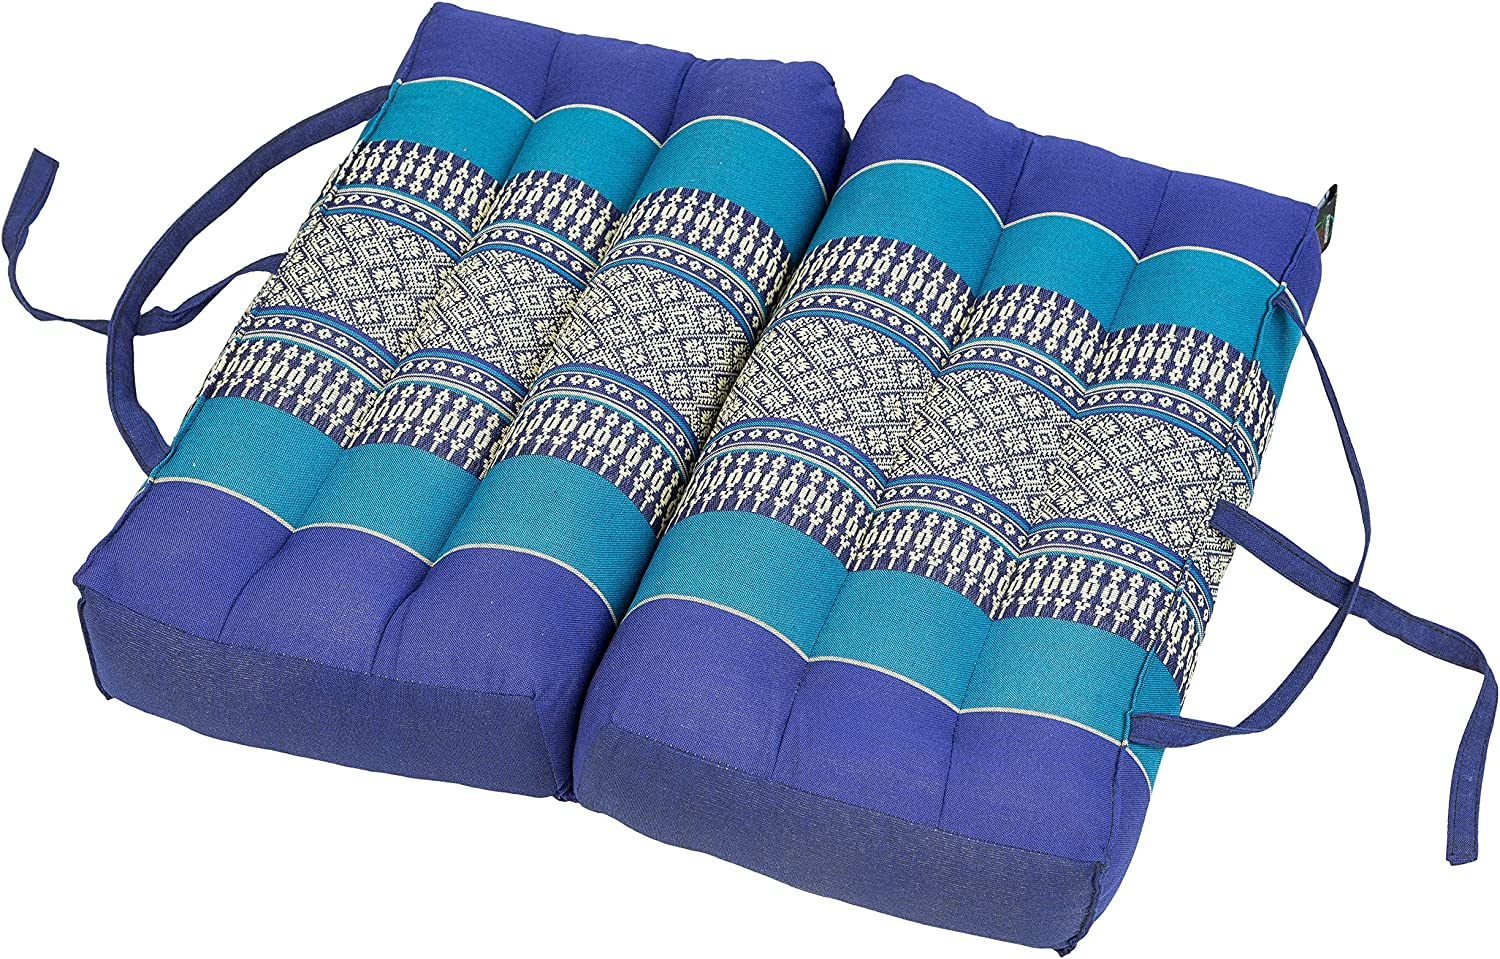 Traditional Thai Design Light Blues Support Cushion for Yoga and Meditation Pillow Block 50x15x10cm kapok-filled